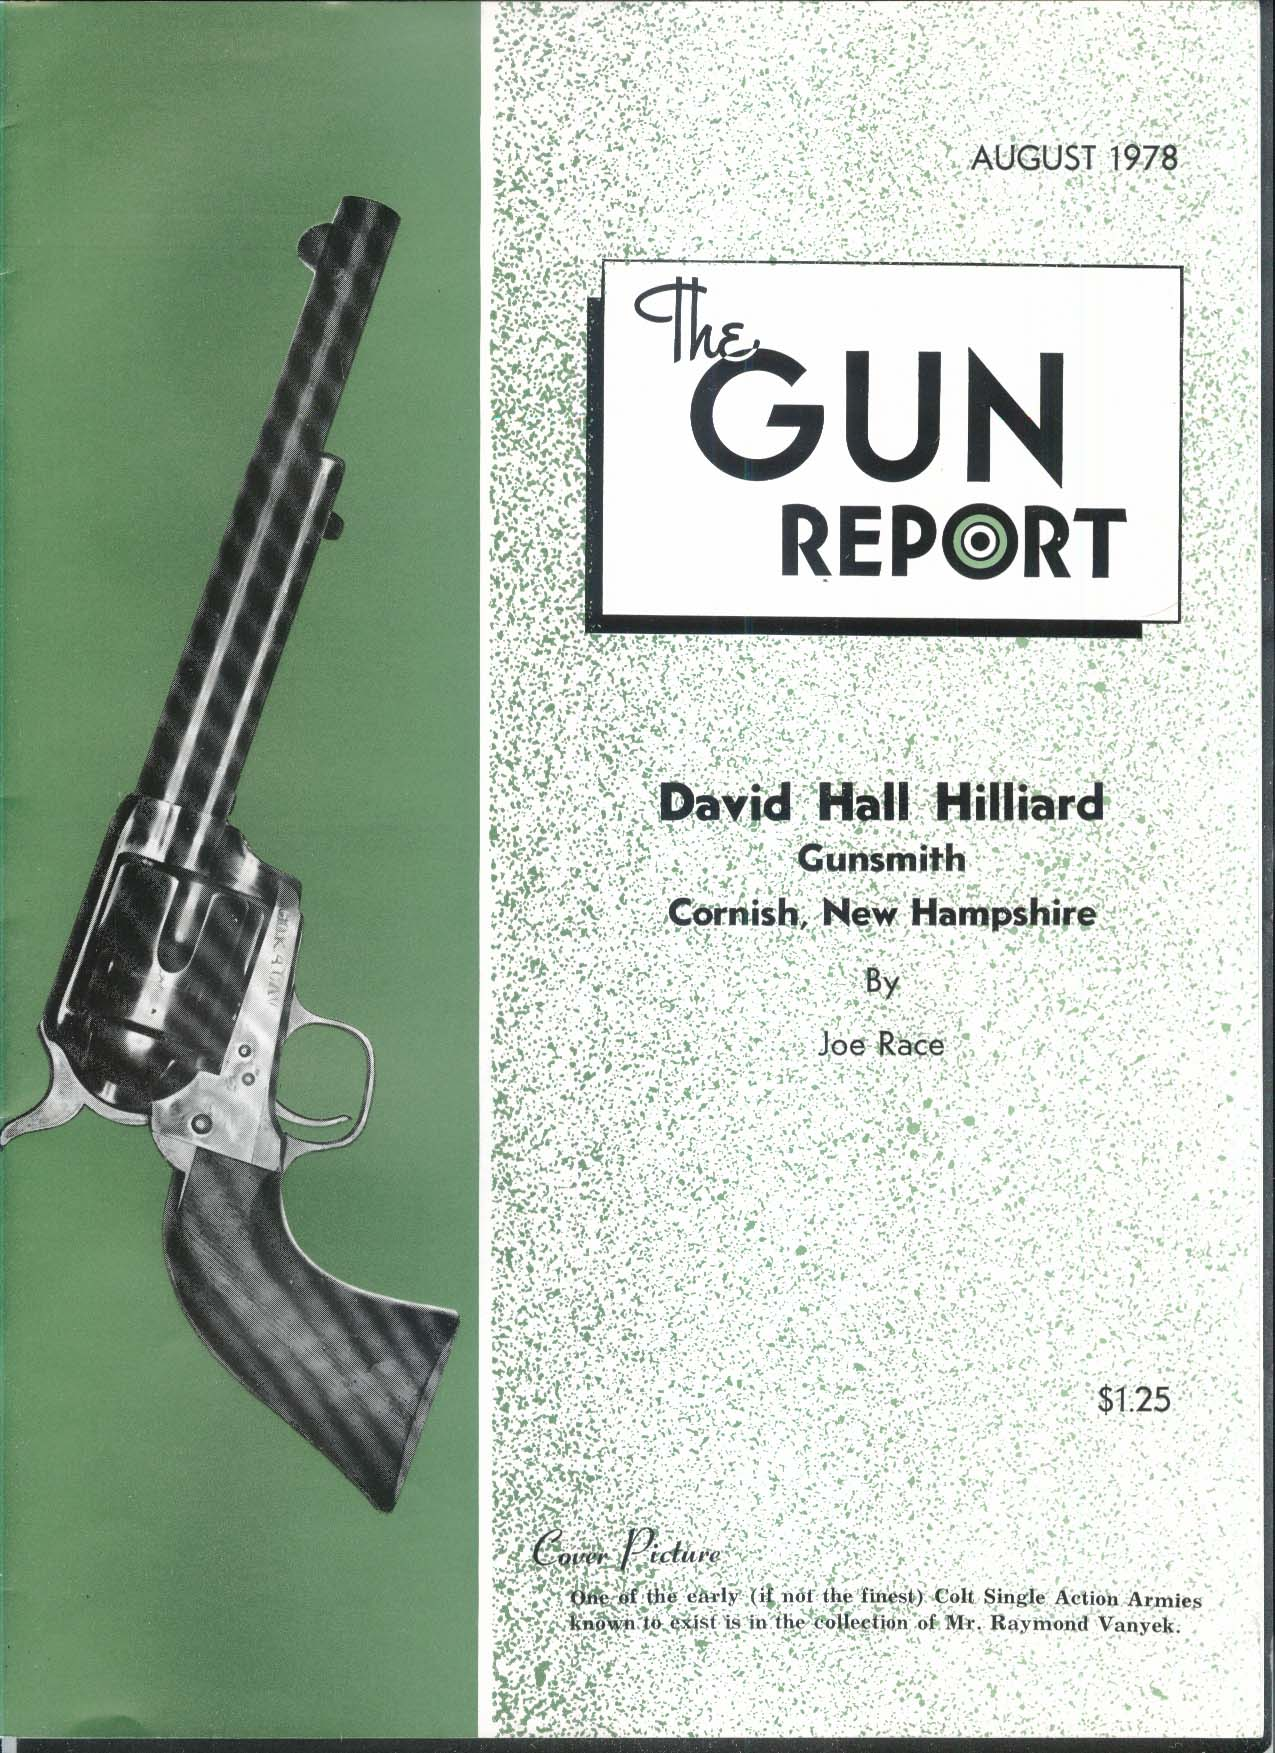 GUN REPORT David Hall Hilliard Colt Single Action Army 8 1978